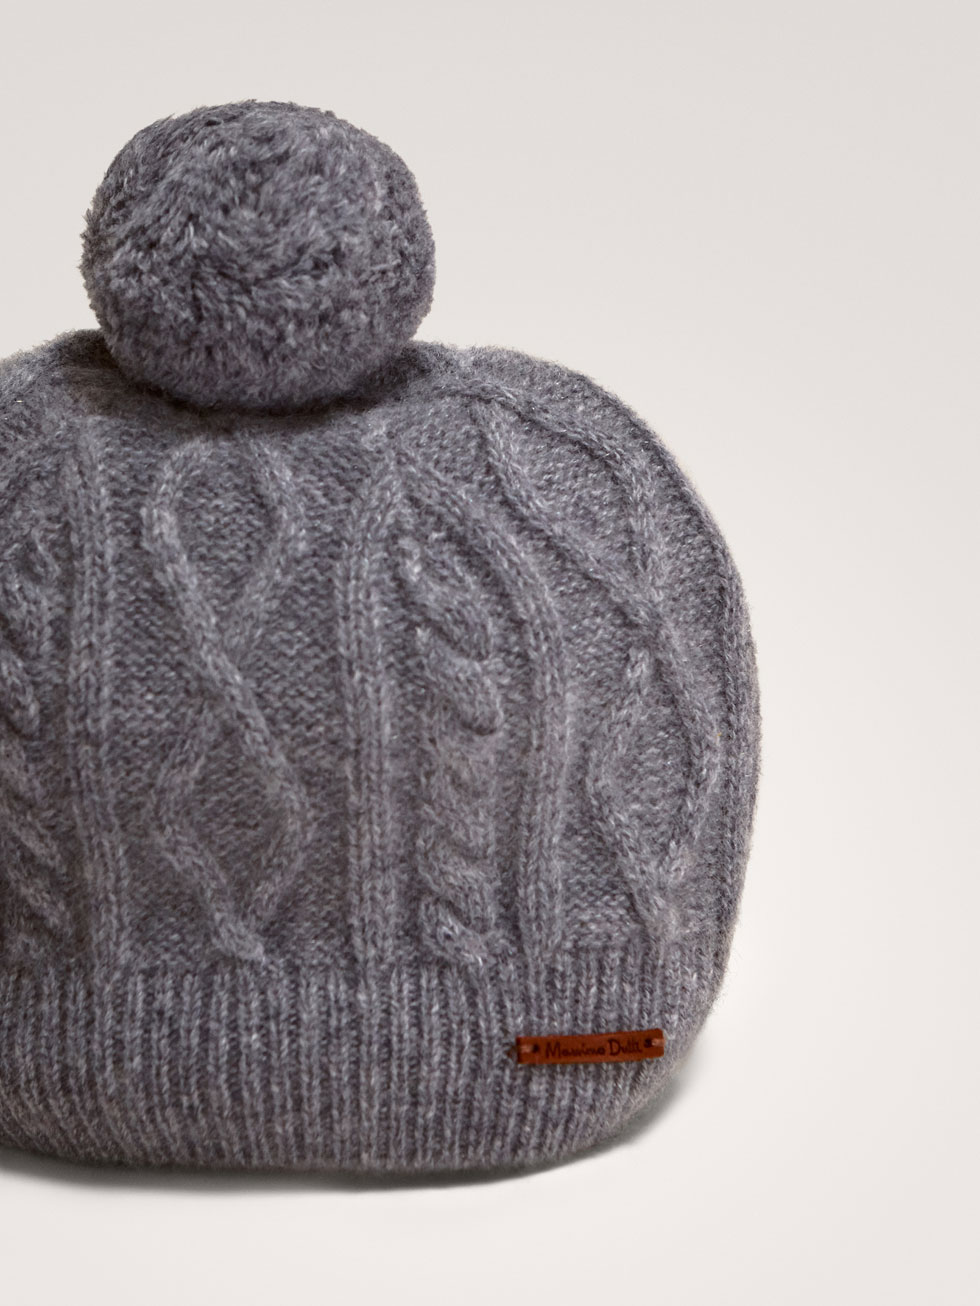 Cashmere Cable Knit Hat 9a4f46ab9468